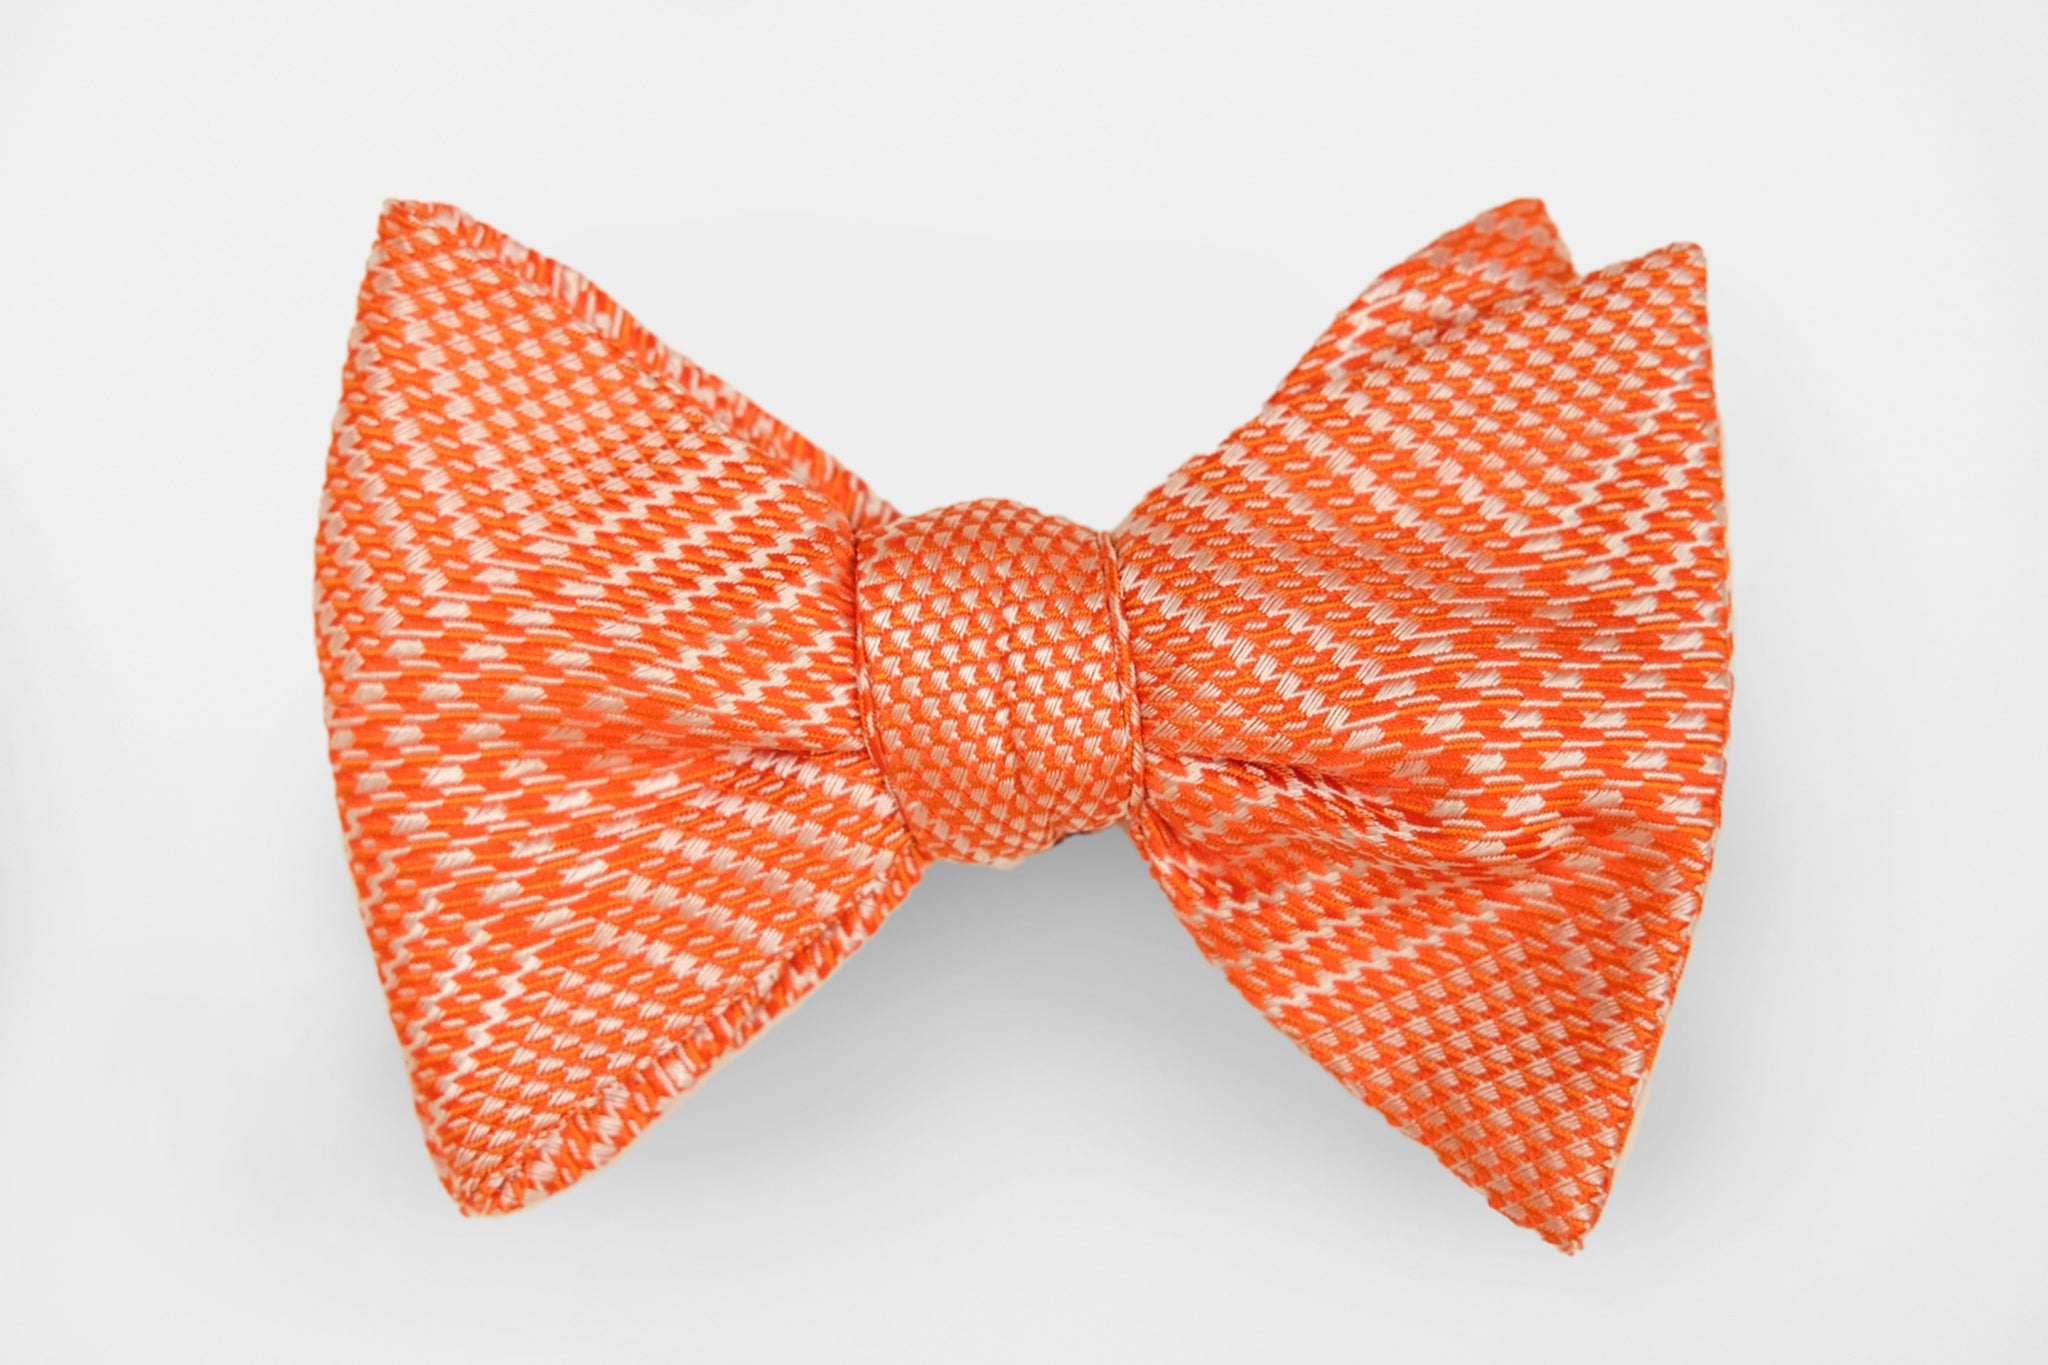 Orange and Silver Woven Bow Tie